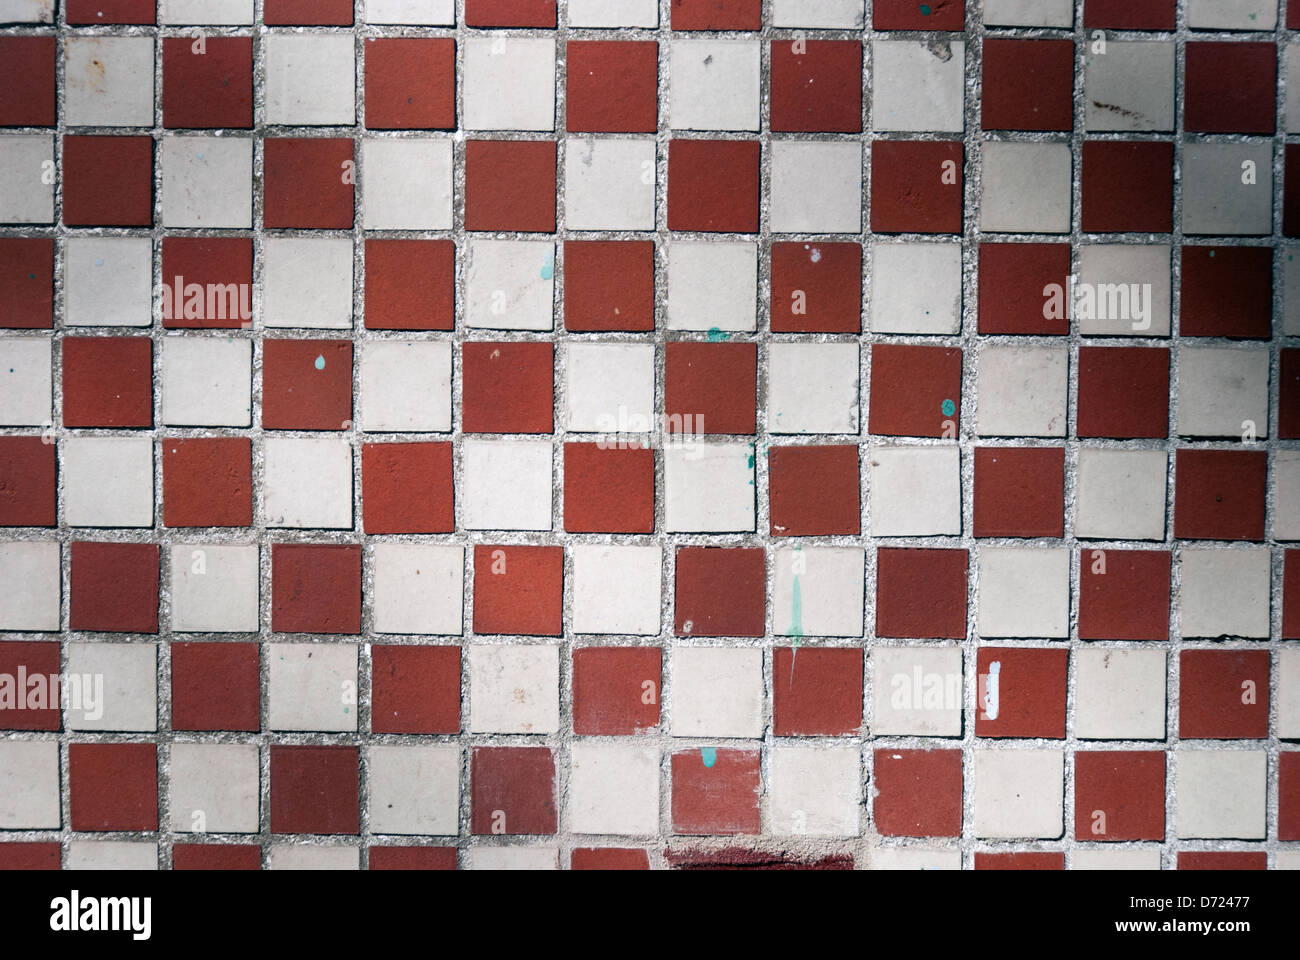 Close up of brown and white tiled floor - Stock Image